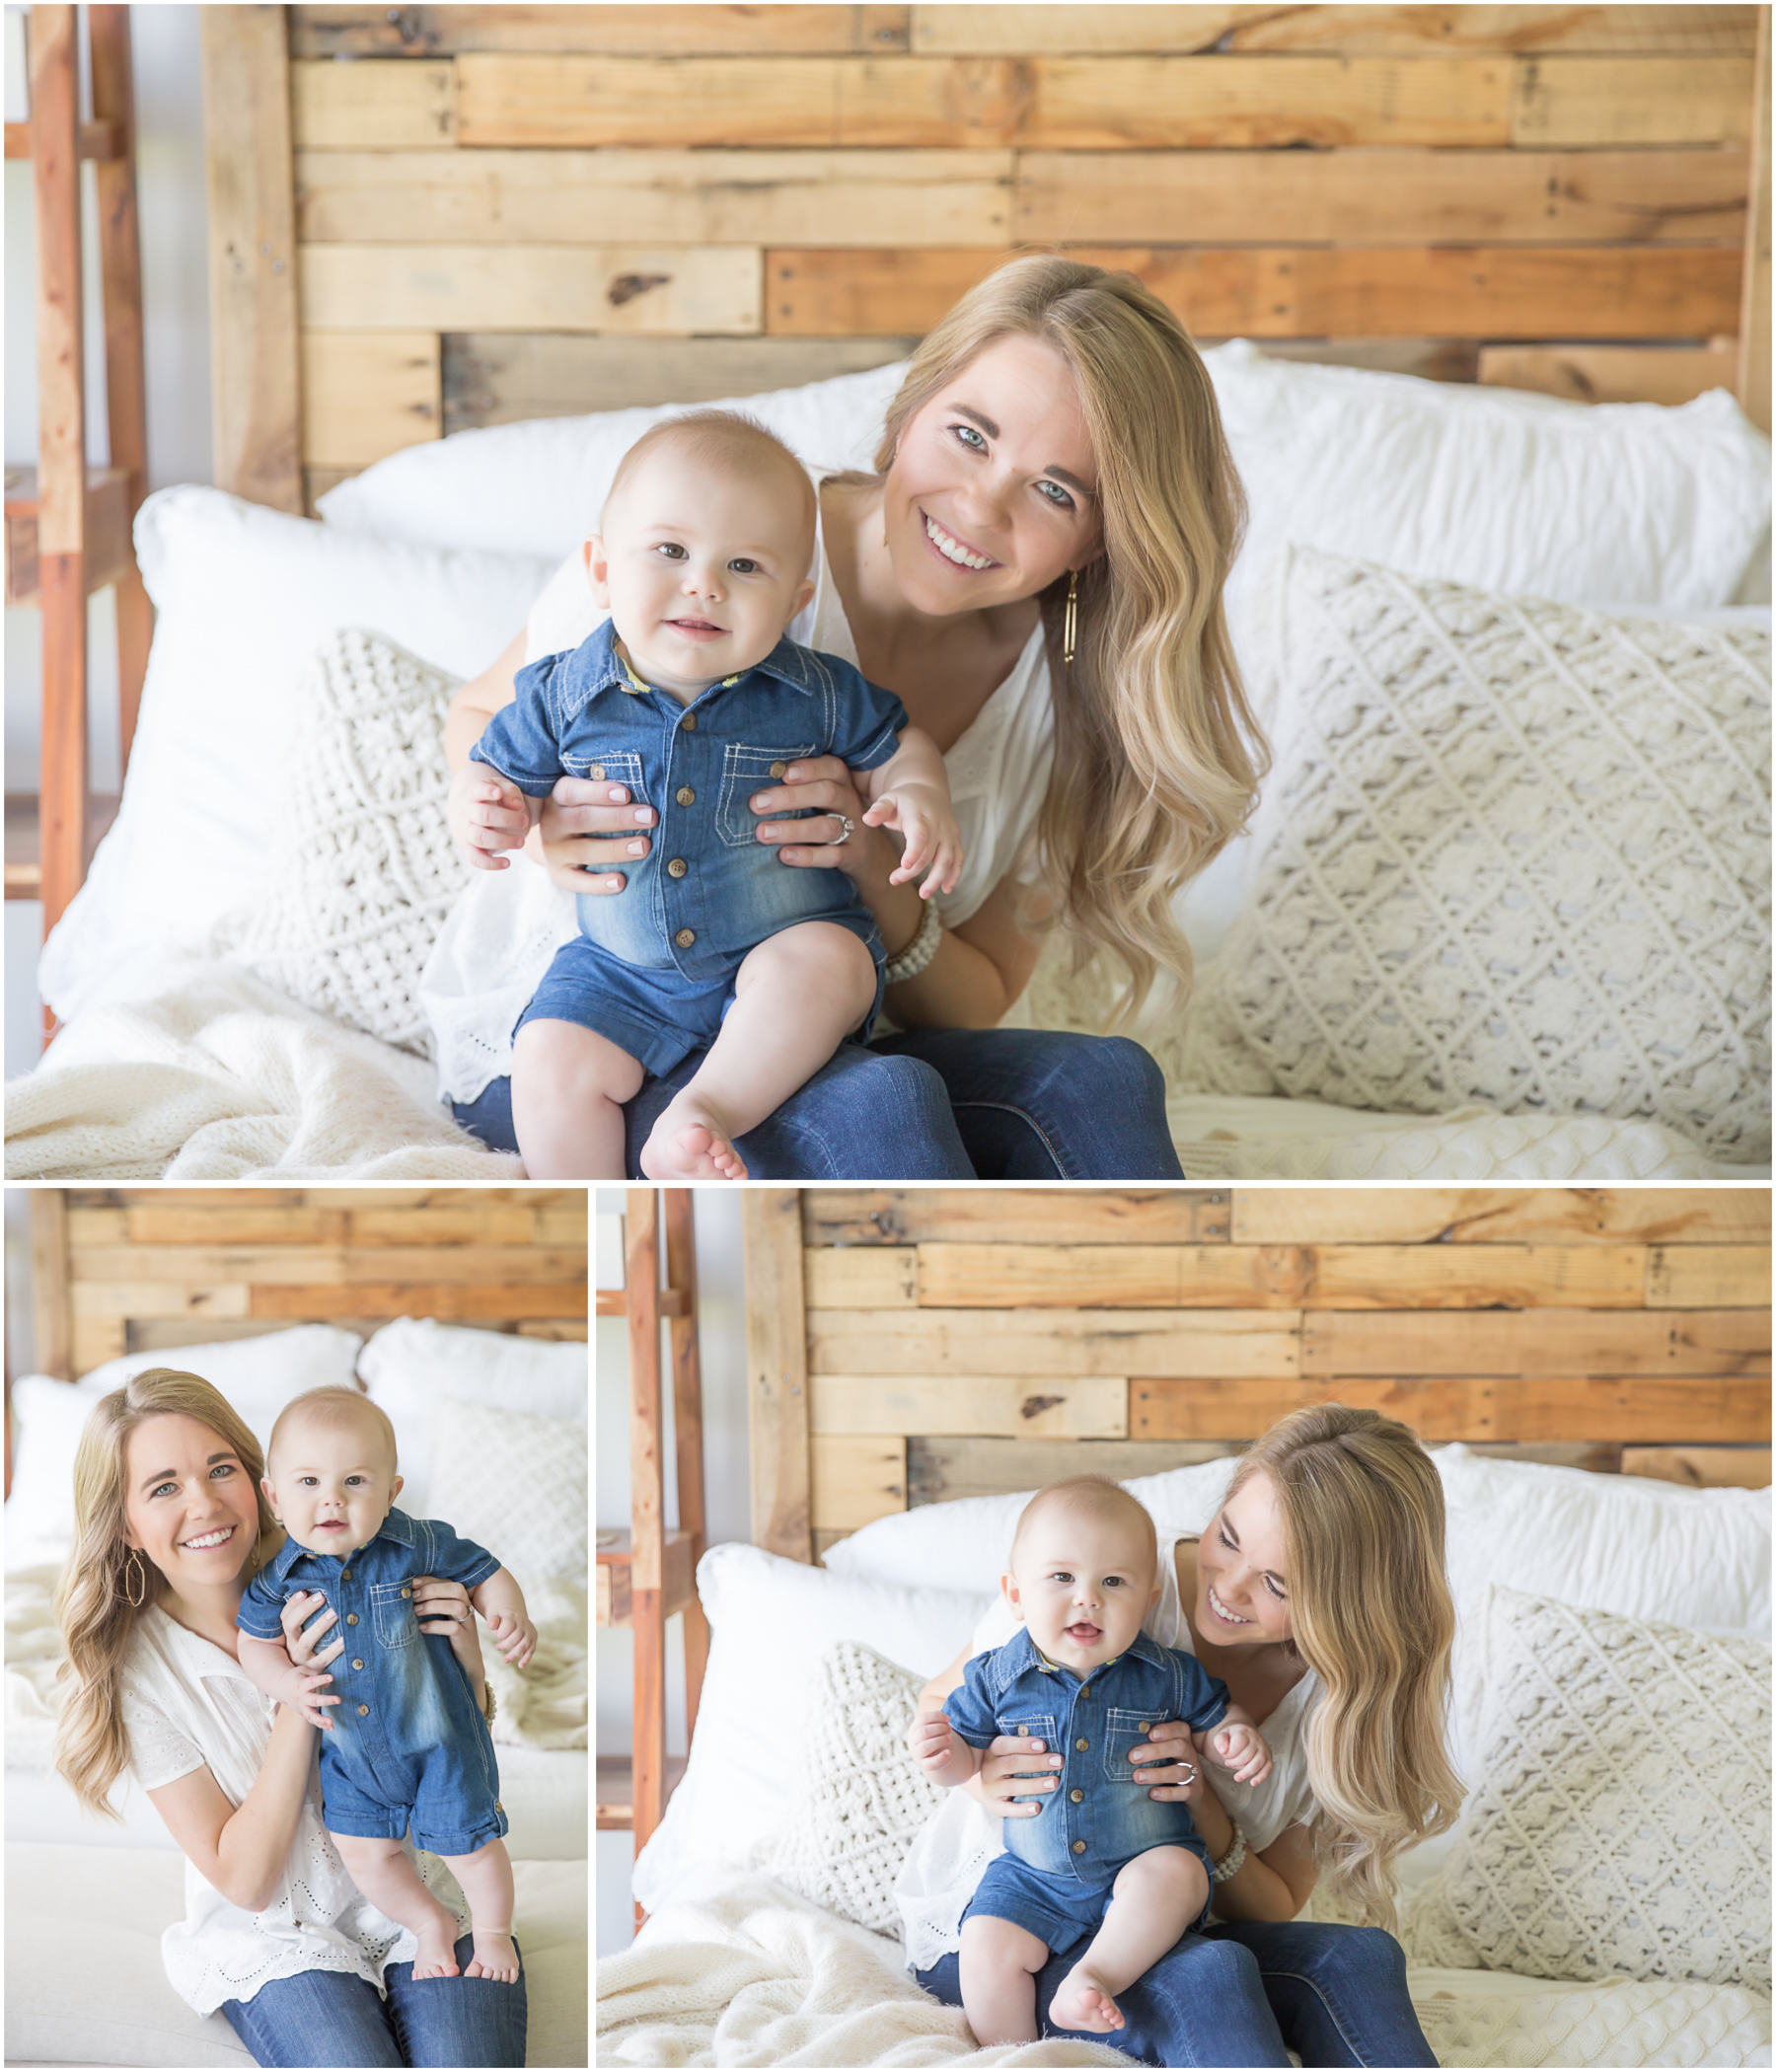 Chelsey & Barret Mommy & Me Session Collage 1 - Cara Peterson Photography 2019  -1.jpg